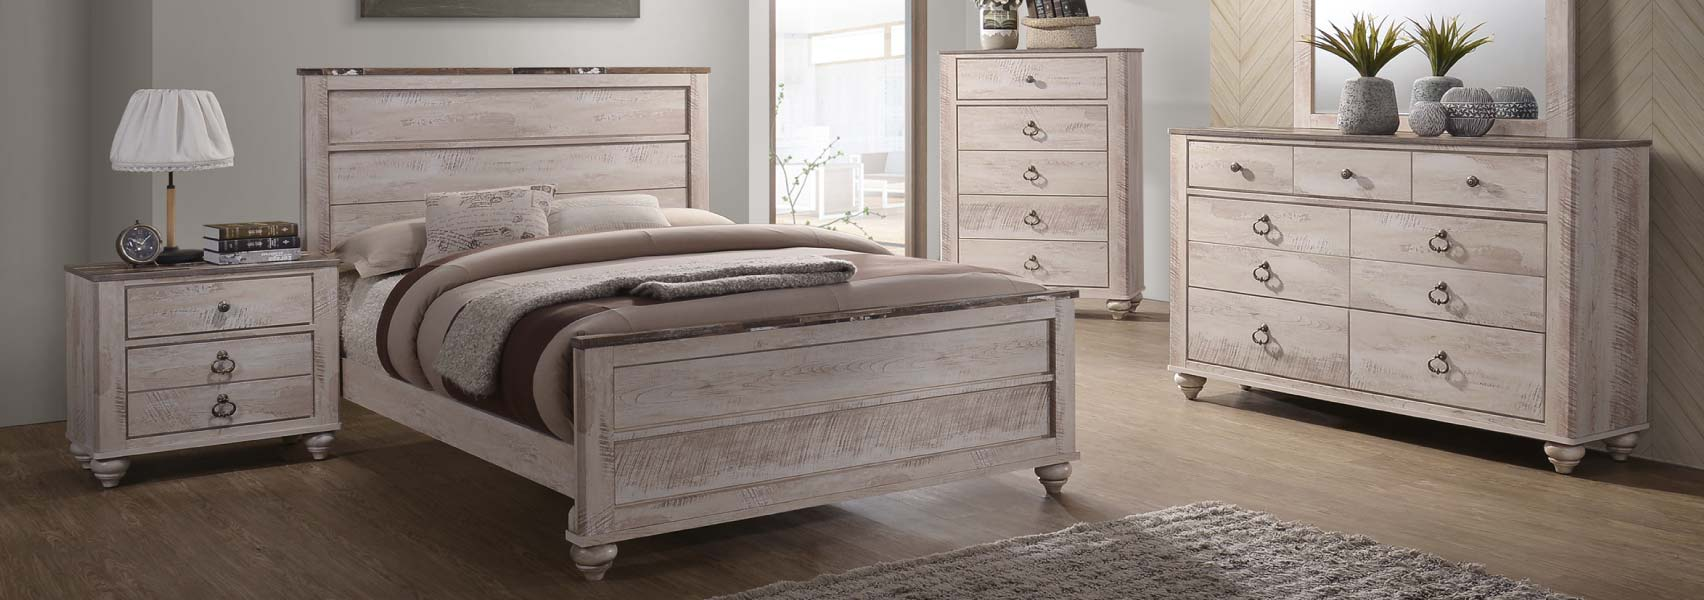 Antiqued, white wash rustic look queen bed